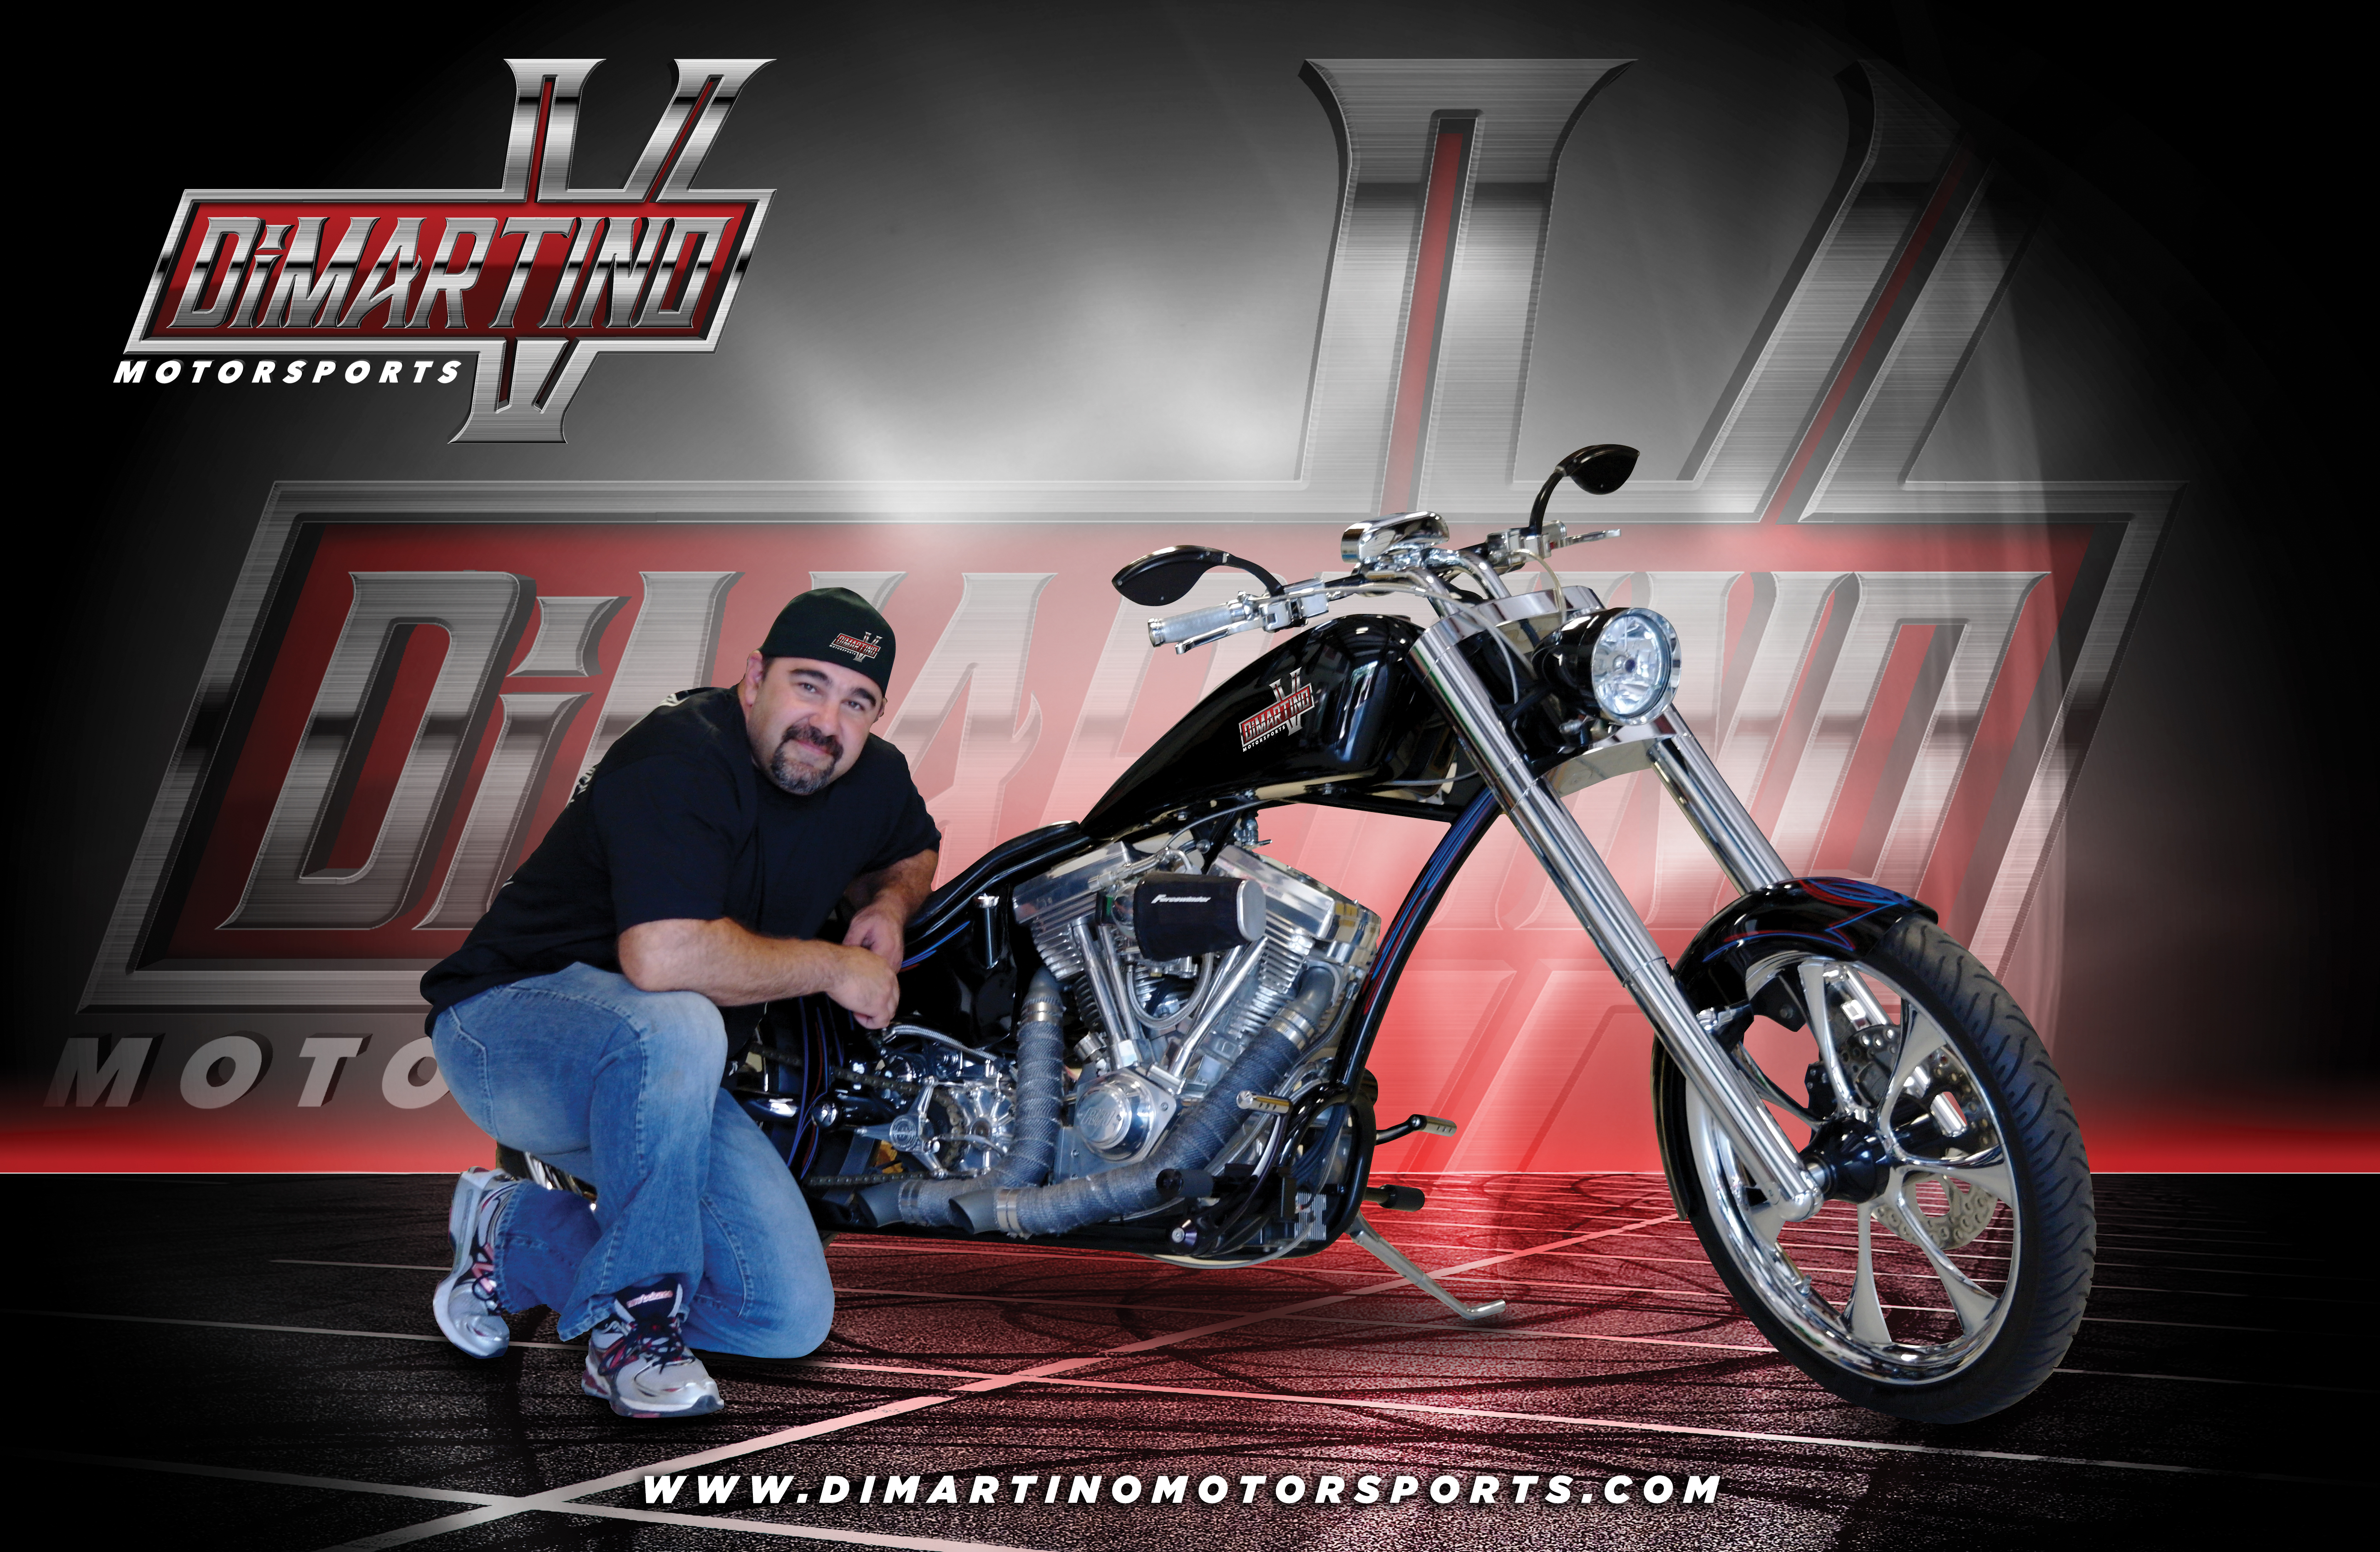 Orange County Choppers (OCC) is a motorcycle manufacturer and lifestyle brand company based in the town of Newburgh, located in Orange County, New York, that .